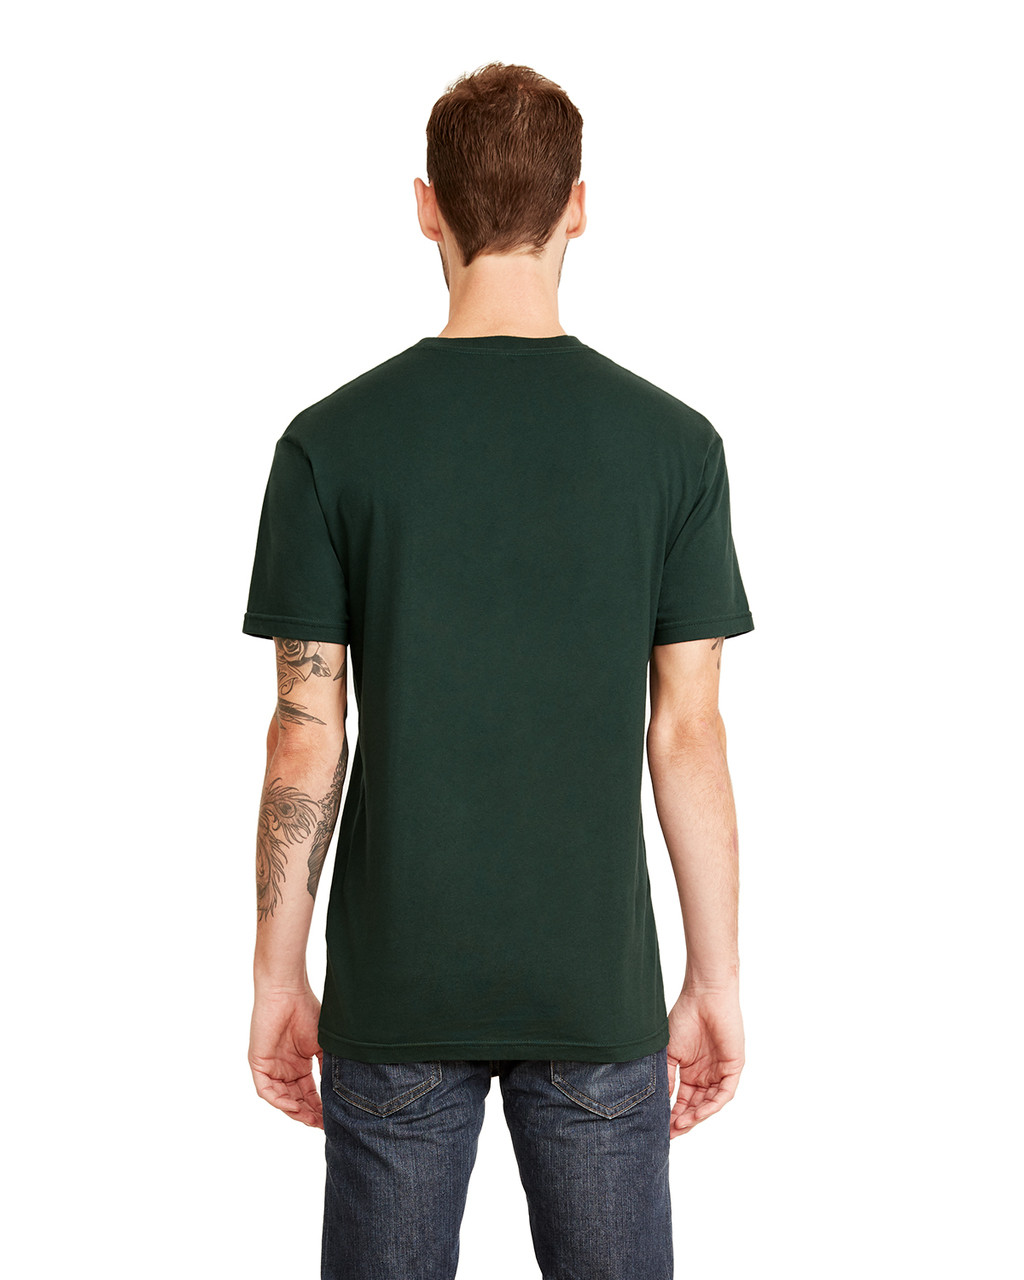 Forest Green, Back - 3605 Next Level Unisex Pocket Crew T-Shirt | Blankclothing.ca